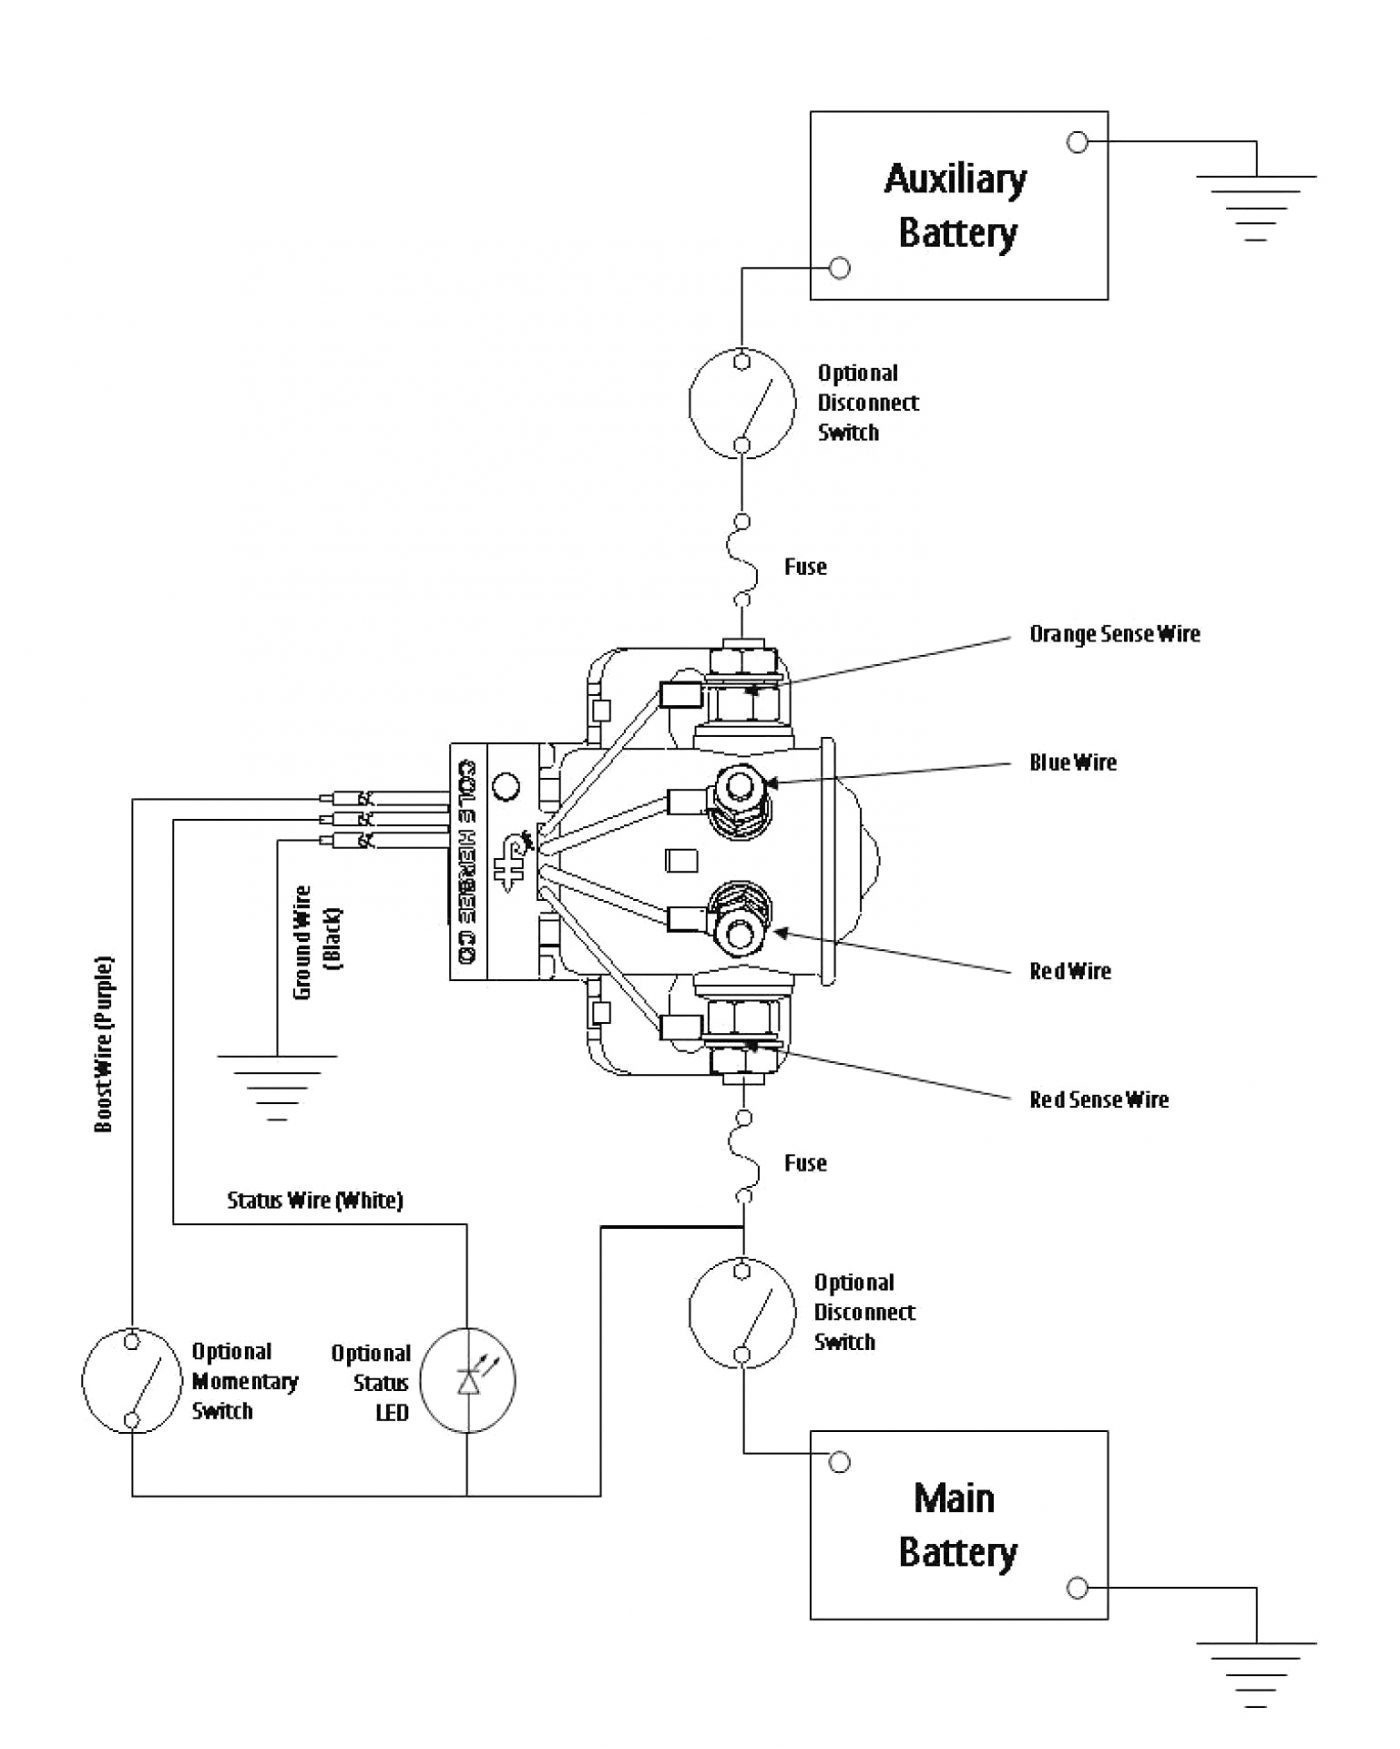 multi battery isolator wiring diagram Collection-Battery Relay Wiring Diagram Inspirationa Wiring Diagram for isolator Switch Save Rv Battery Disconnect Switch 19-i